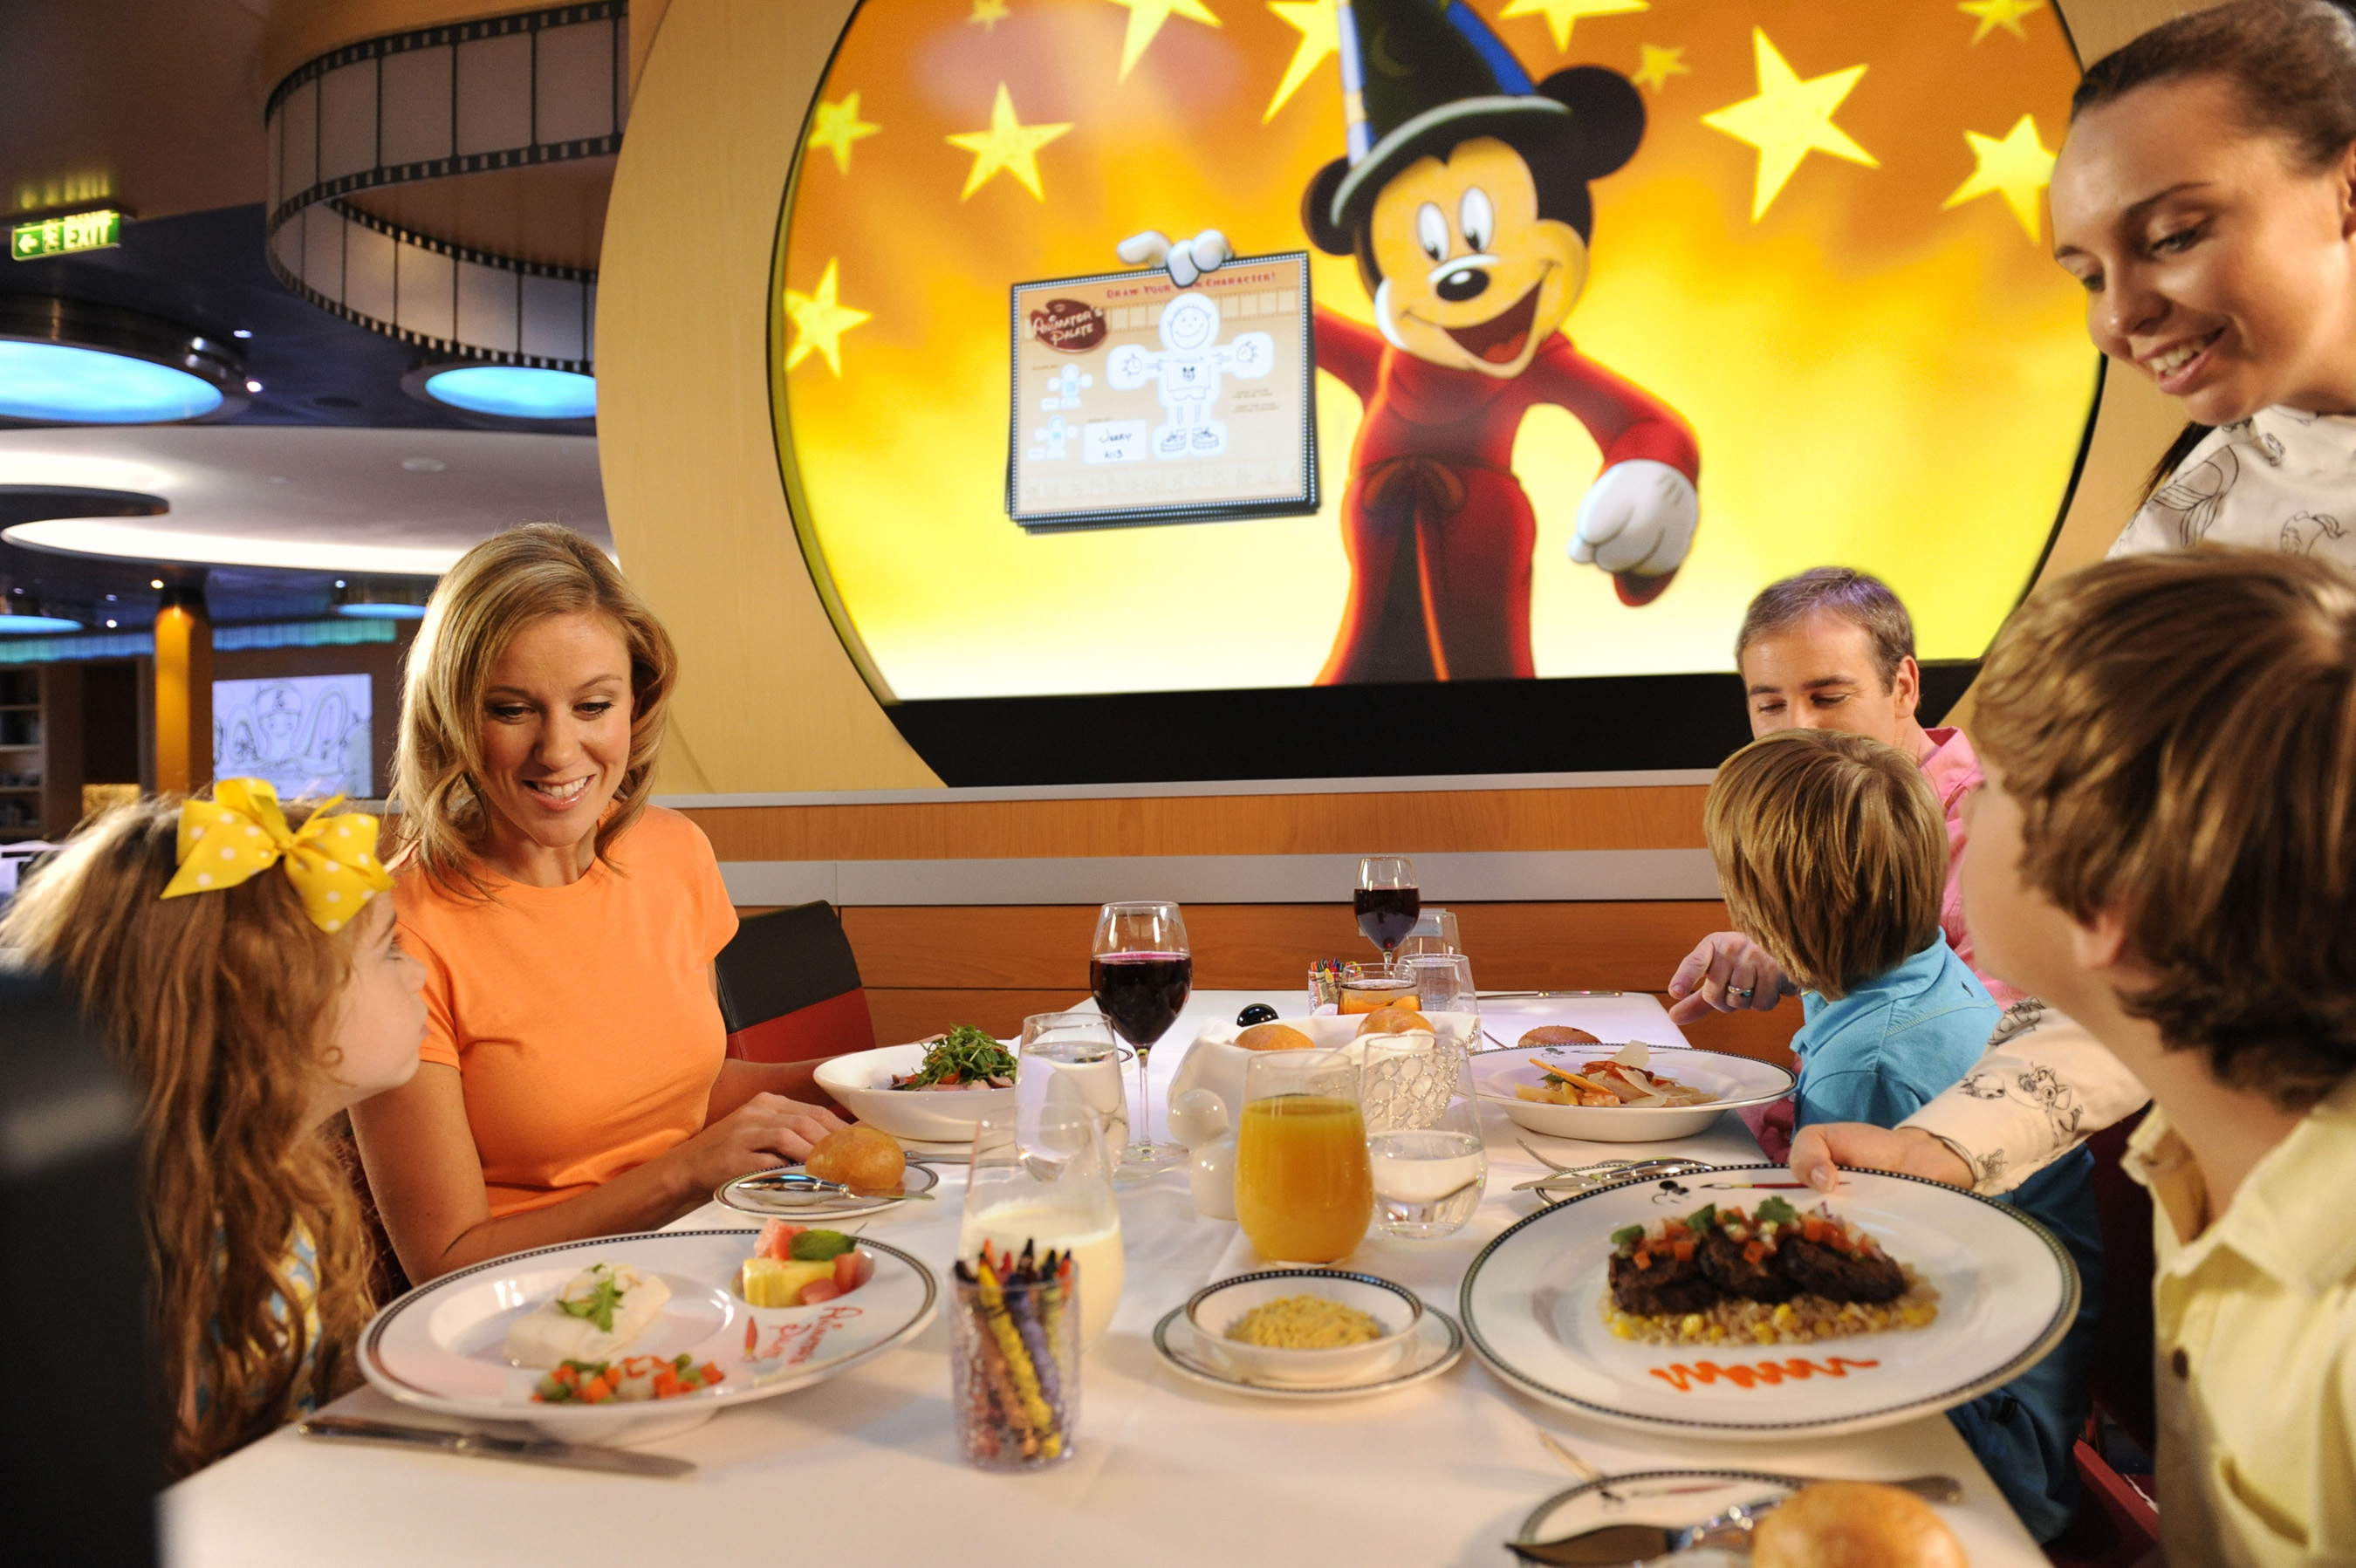 Disney Fantasy's Animator's Palate Brings Guest Drawings to Life